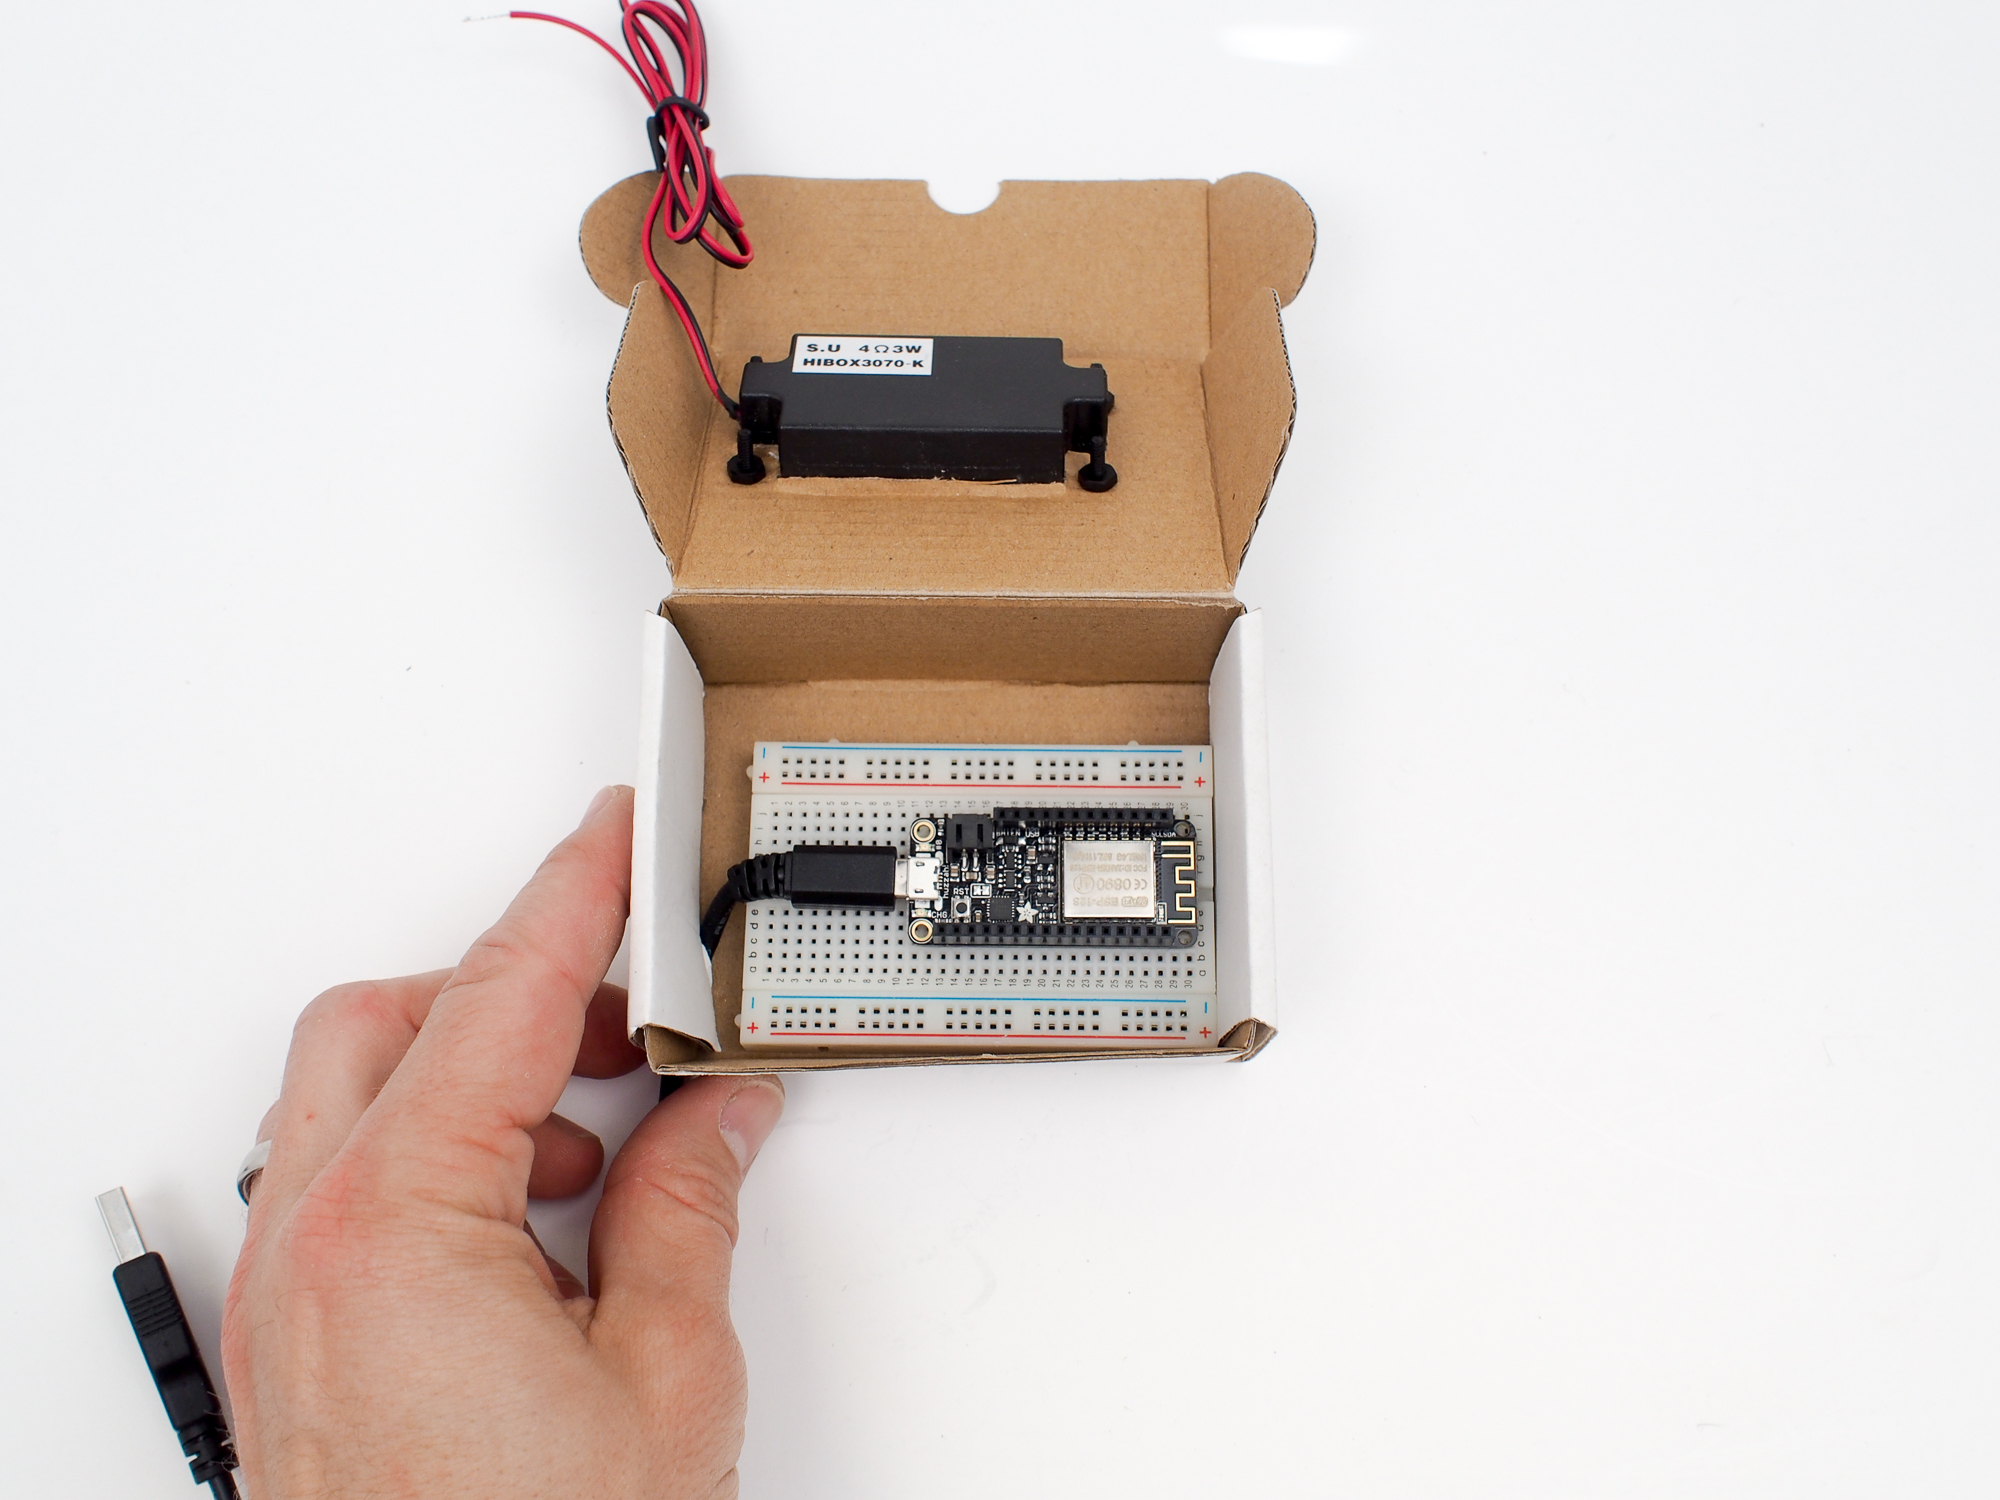 adafruit_products_P5240051_2k.jpg